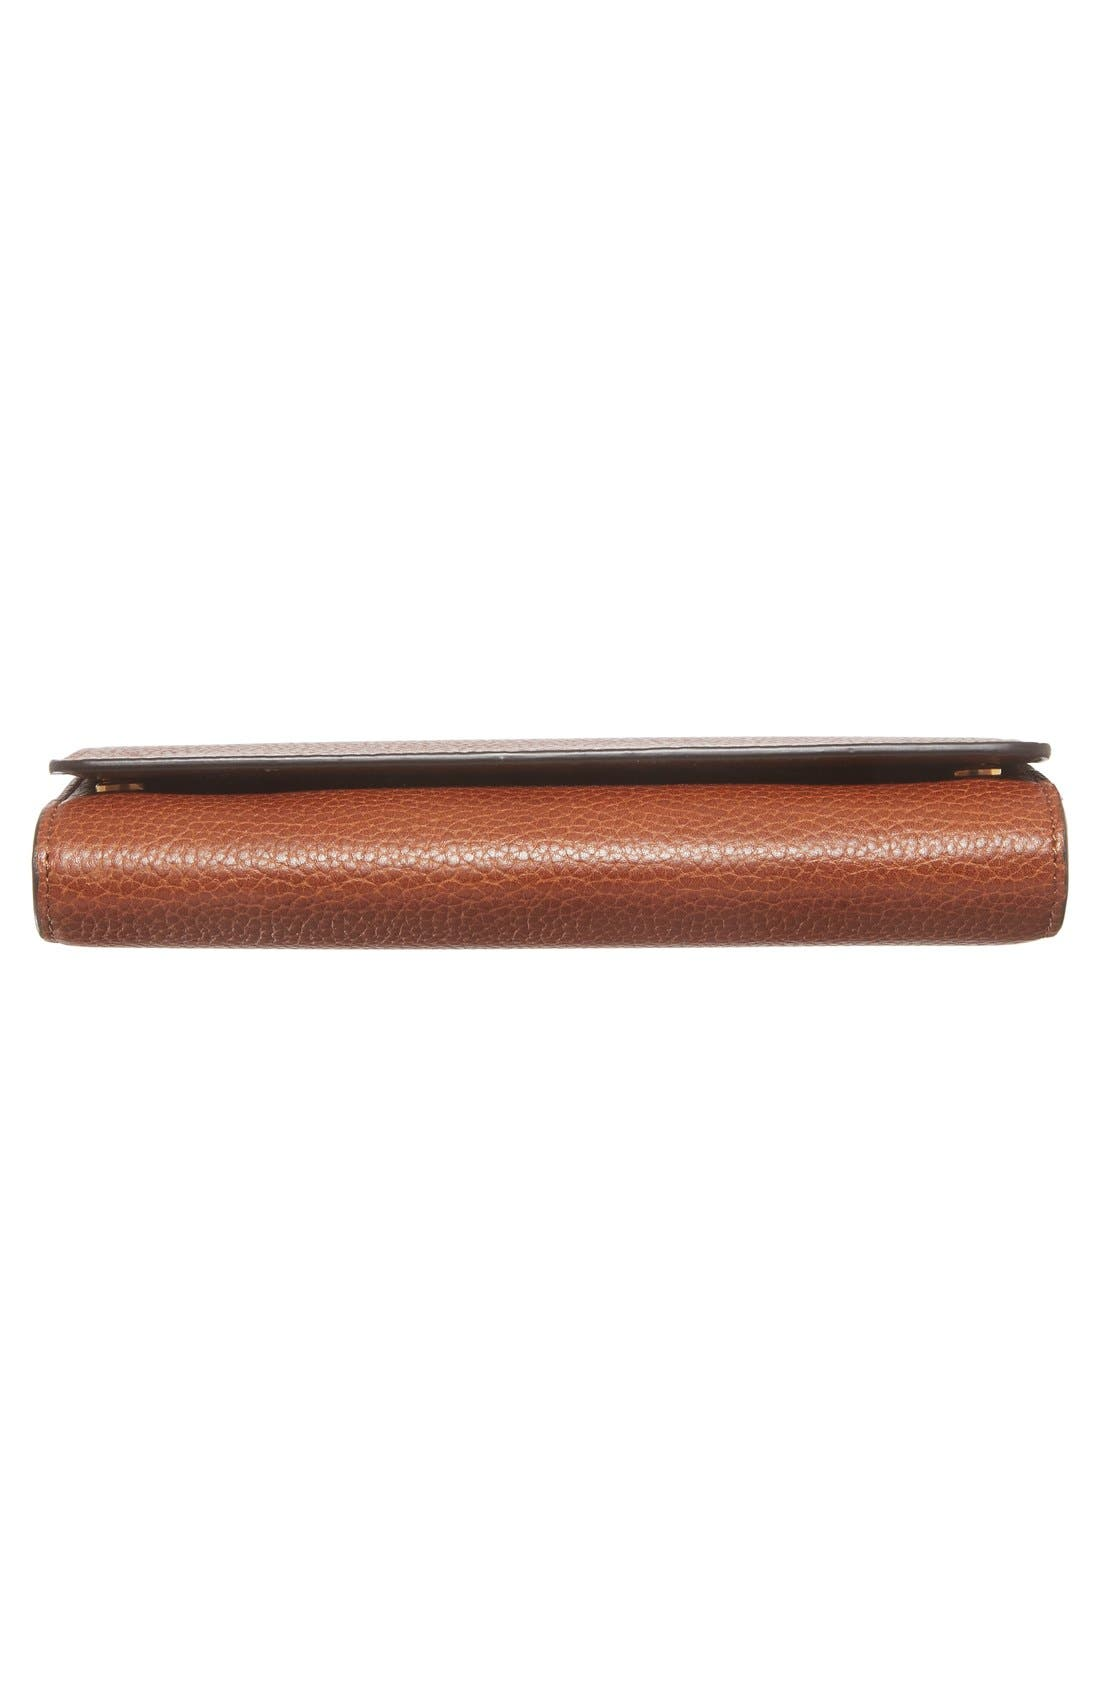 'Continental - Classic' Convertible Leather Clutch,                             Alternate thumbnail 6, color,                             200